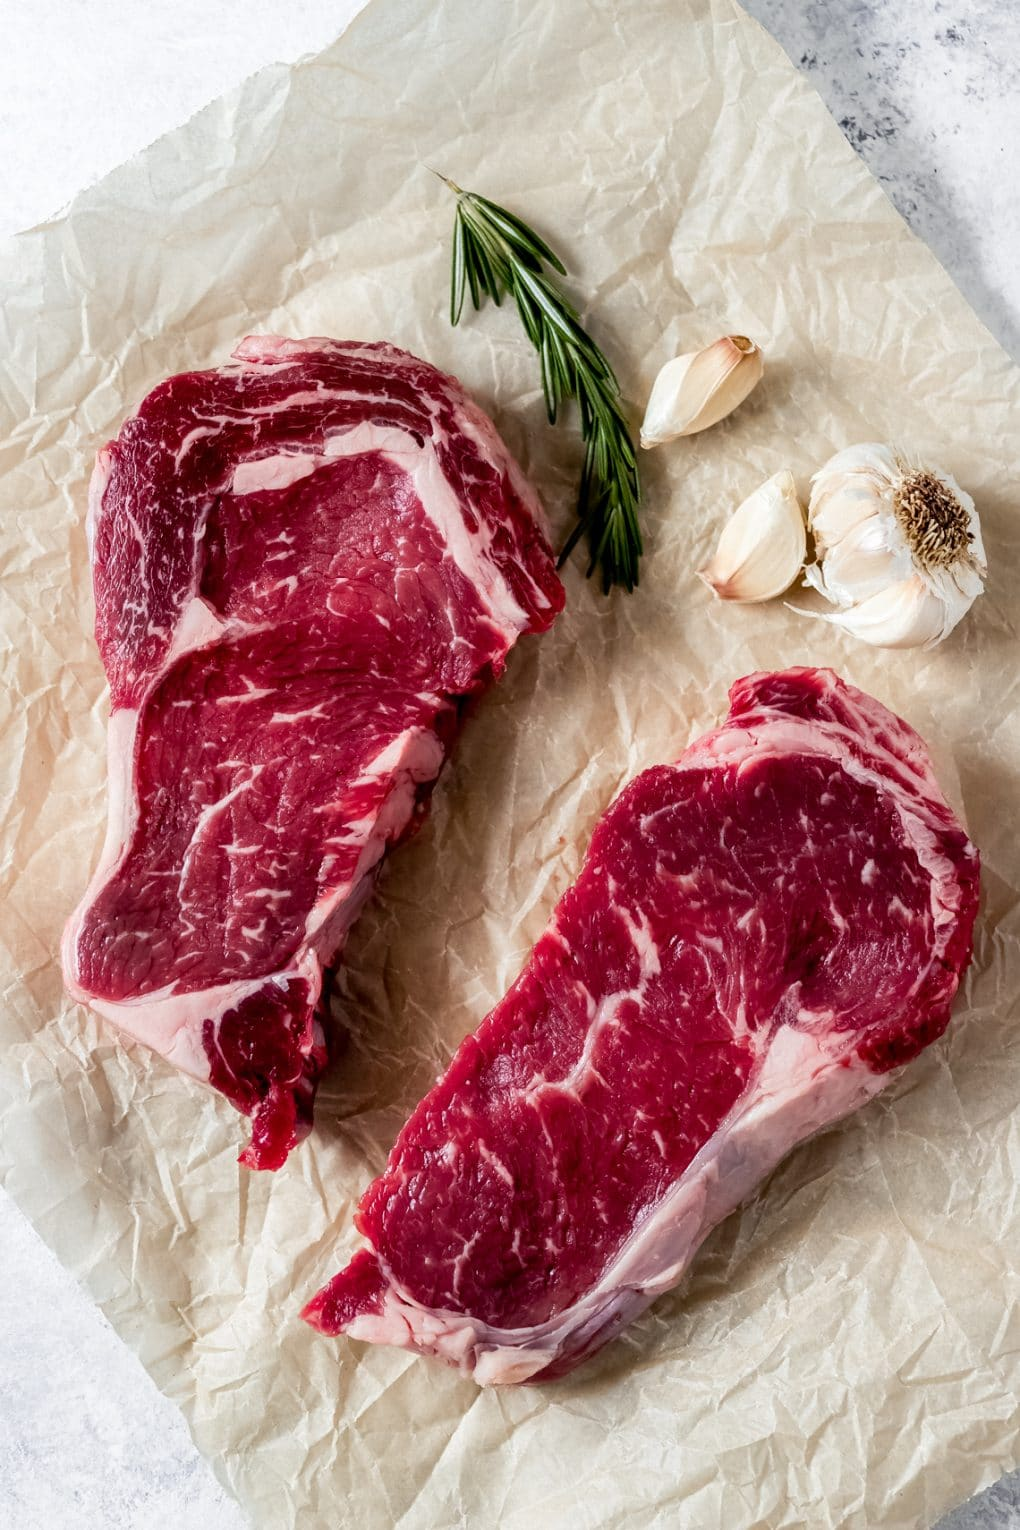 two raw ribeye steaks and rosemary and garlic on a table